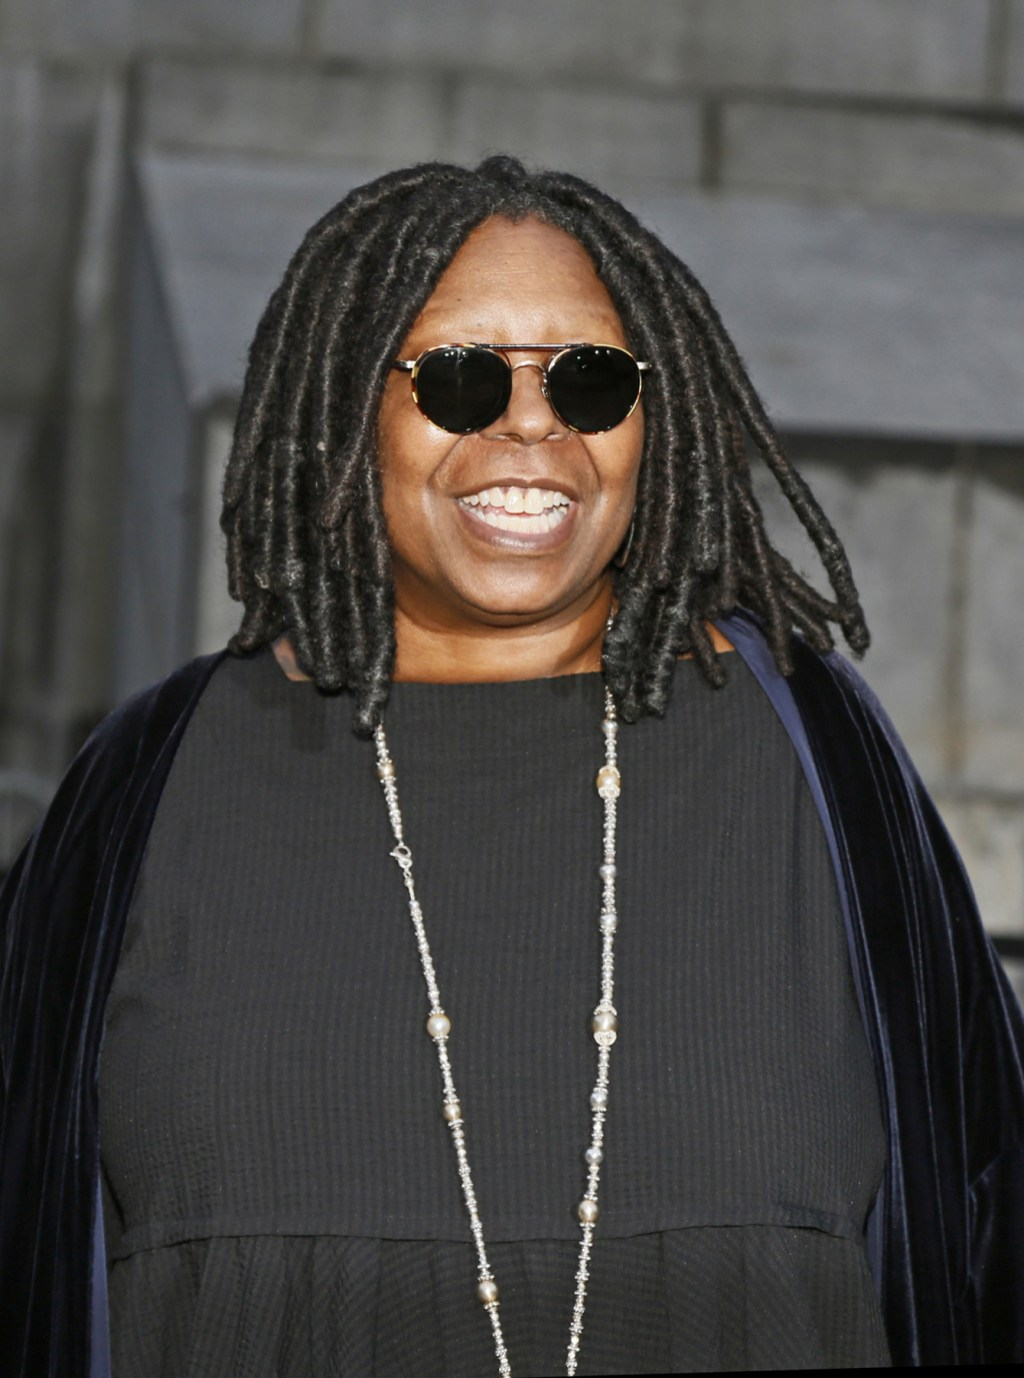 Whoopi Goldberg Cursed Out Jeanine Pirro After Their On-Screen Fight | Black America Web